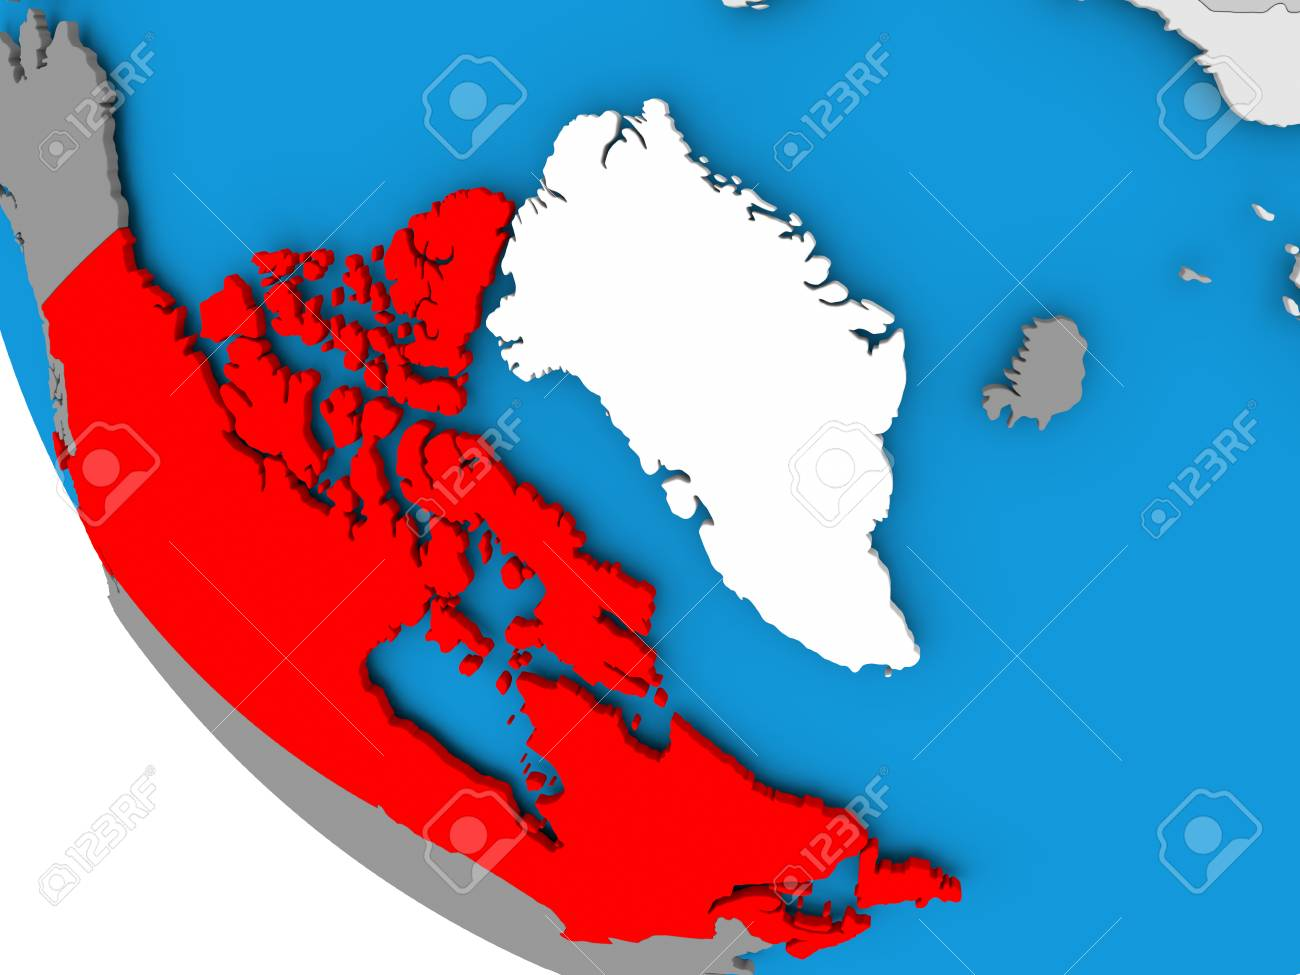 Map Of Canada On Globe.Map Of Canada In Red On Political Globe 3d Illustration Stock